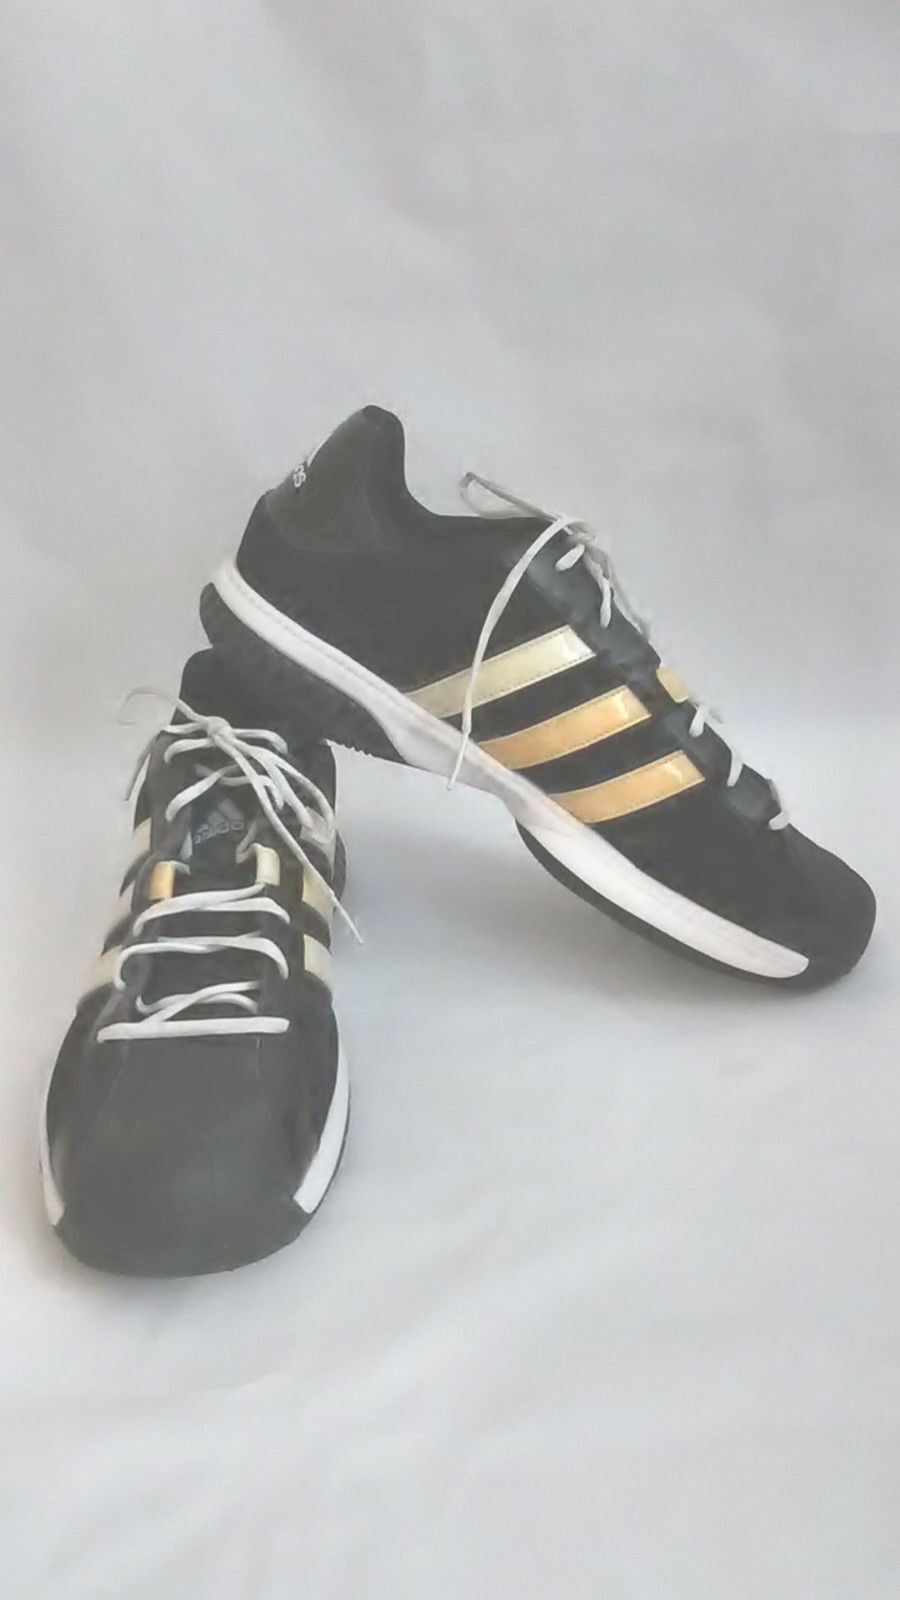 Adidas Men's Fit Foam Black Yellow Sz 17 Athletic Sneaker Gym Running Shoes EUC Wild casual shoes